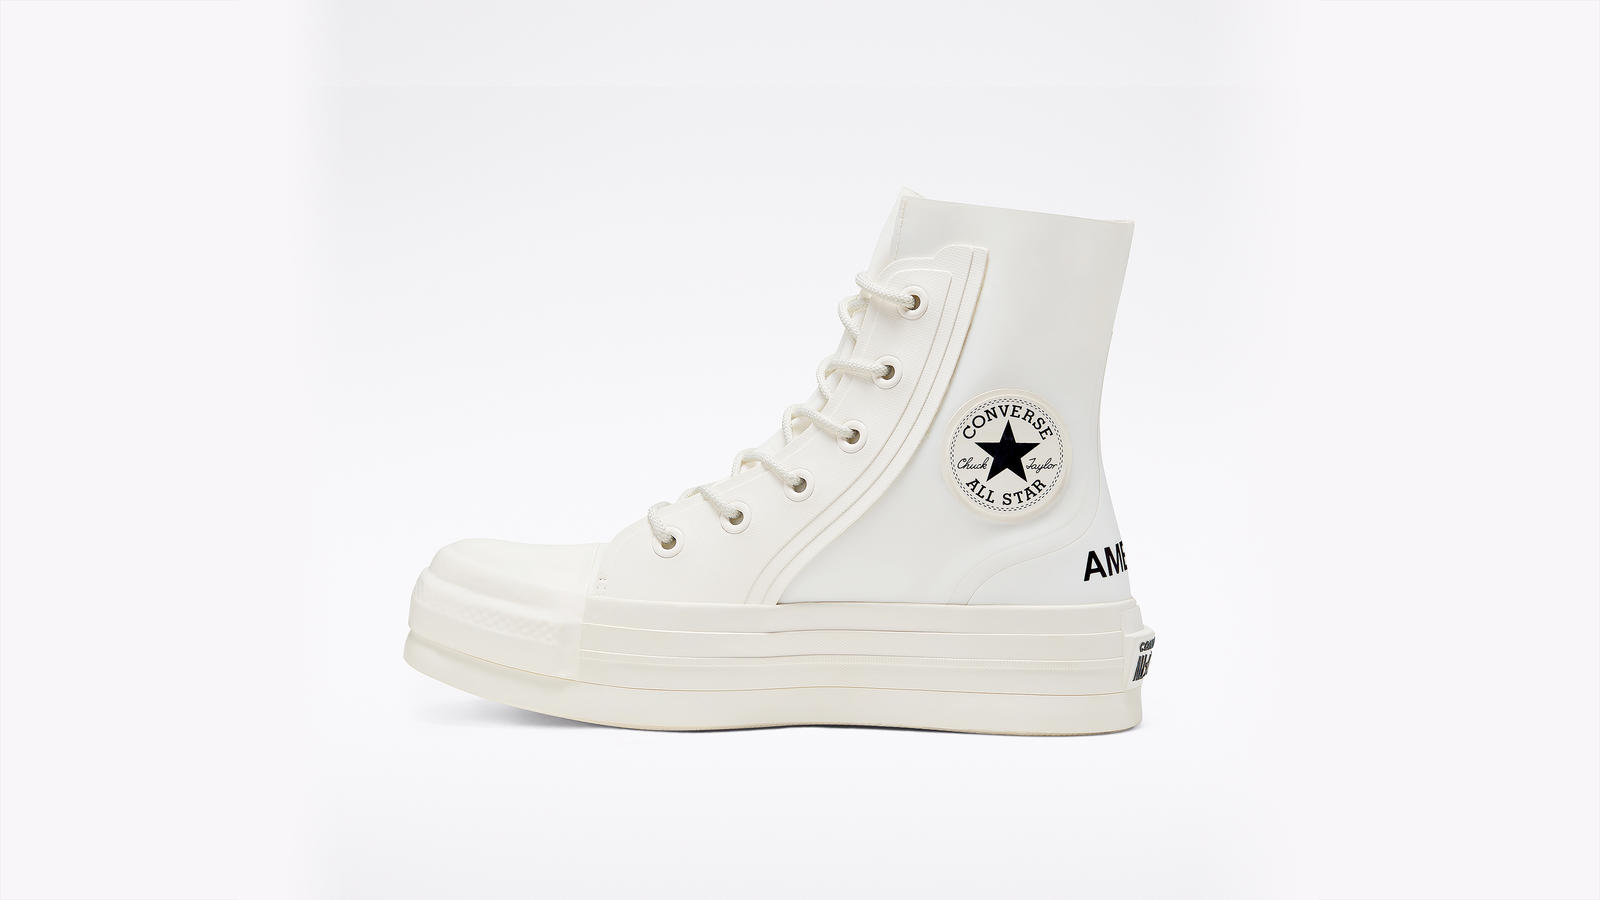 Converse x Ambush Collaboration by Yoon Ahn  3